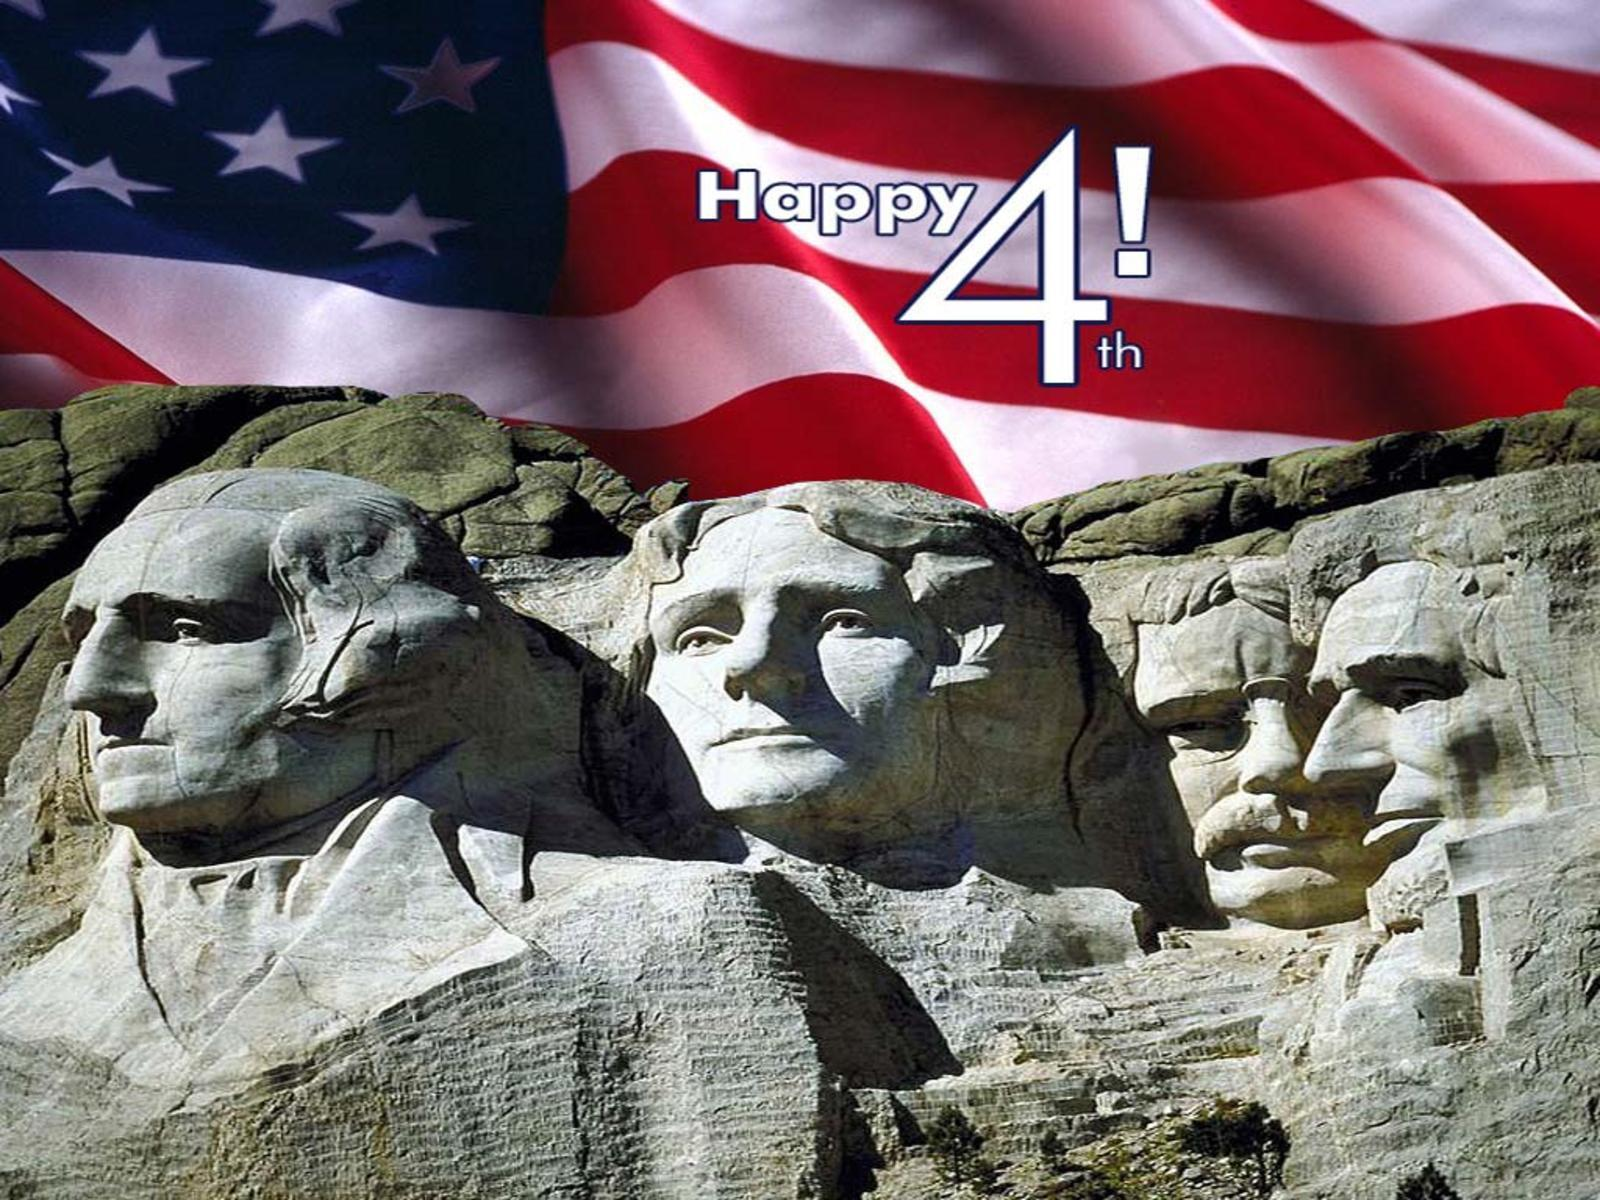 Mont Rushmore happy 4th July free desktop background - free ...